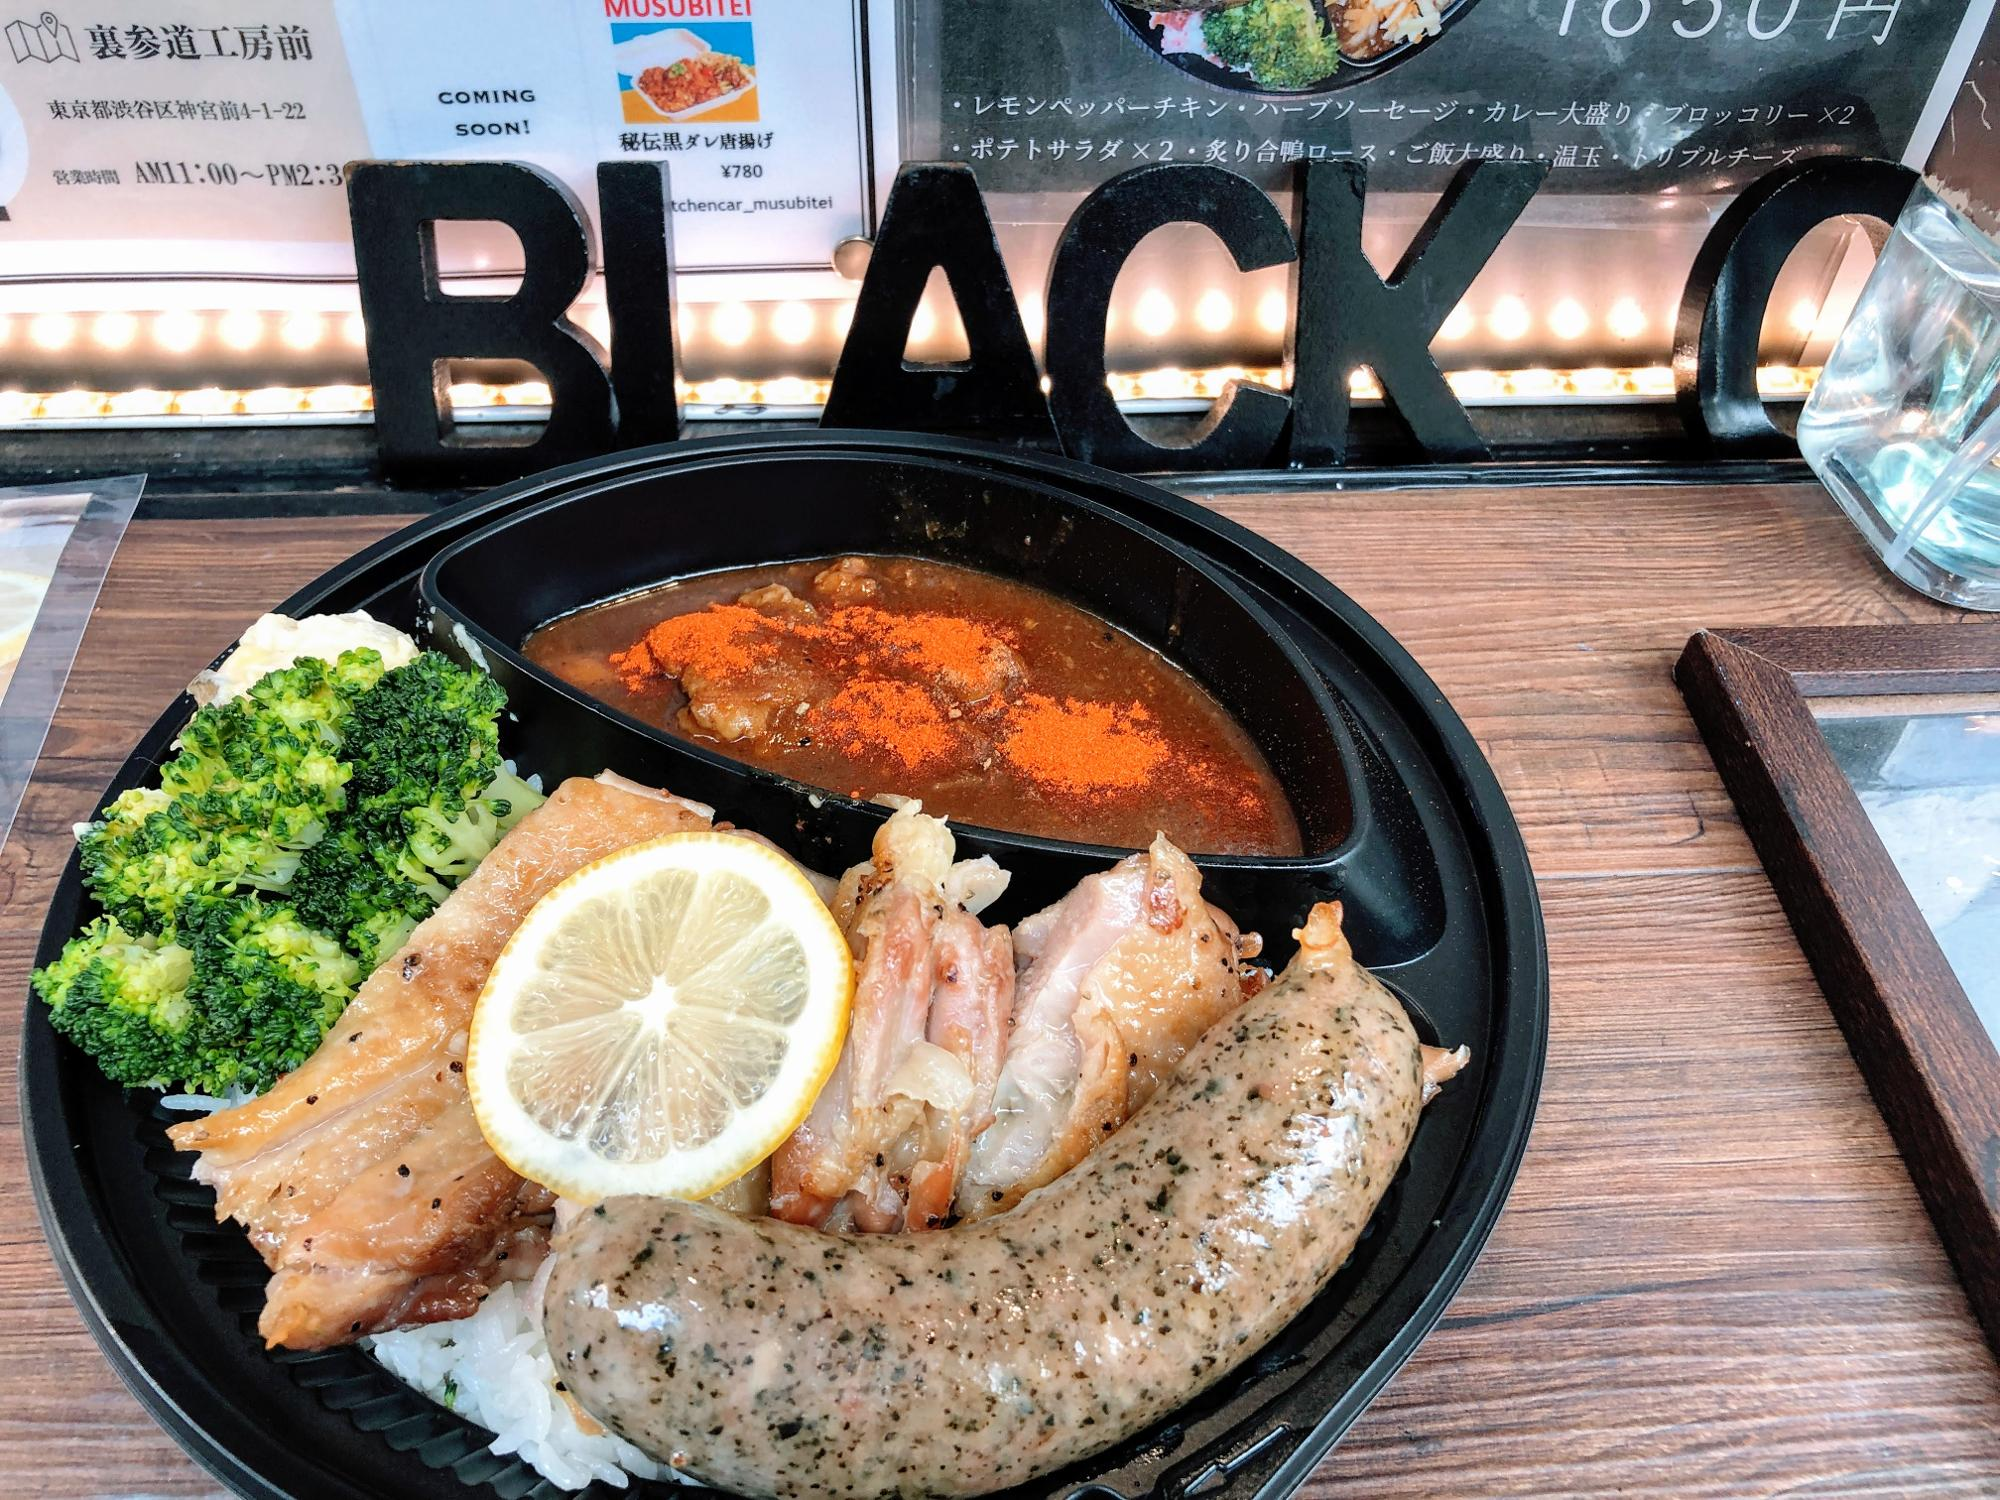 Blackout Specialの野菜増し(1,150円)